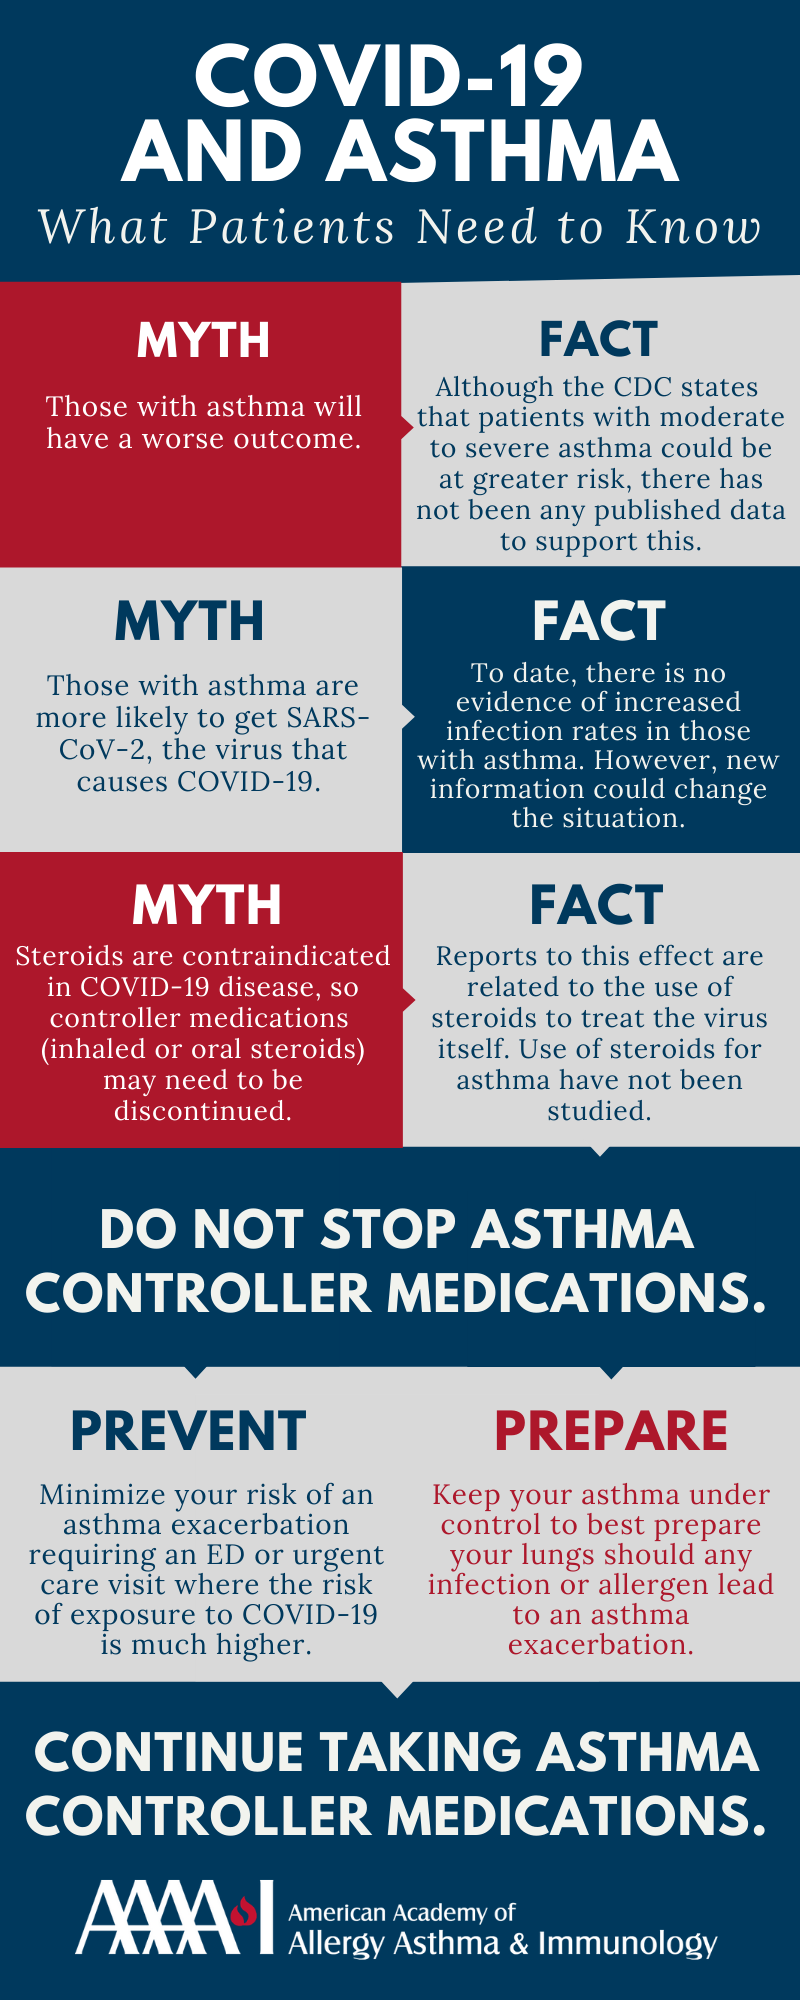 COVID-19 and Asthma Infographic for Patients